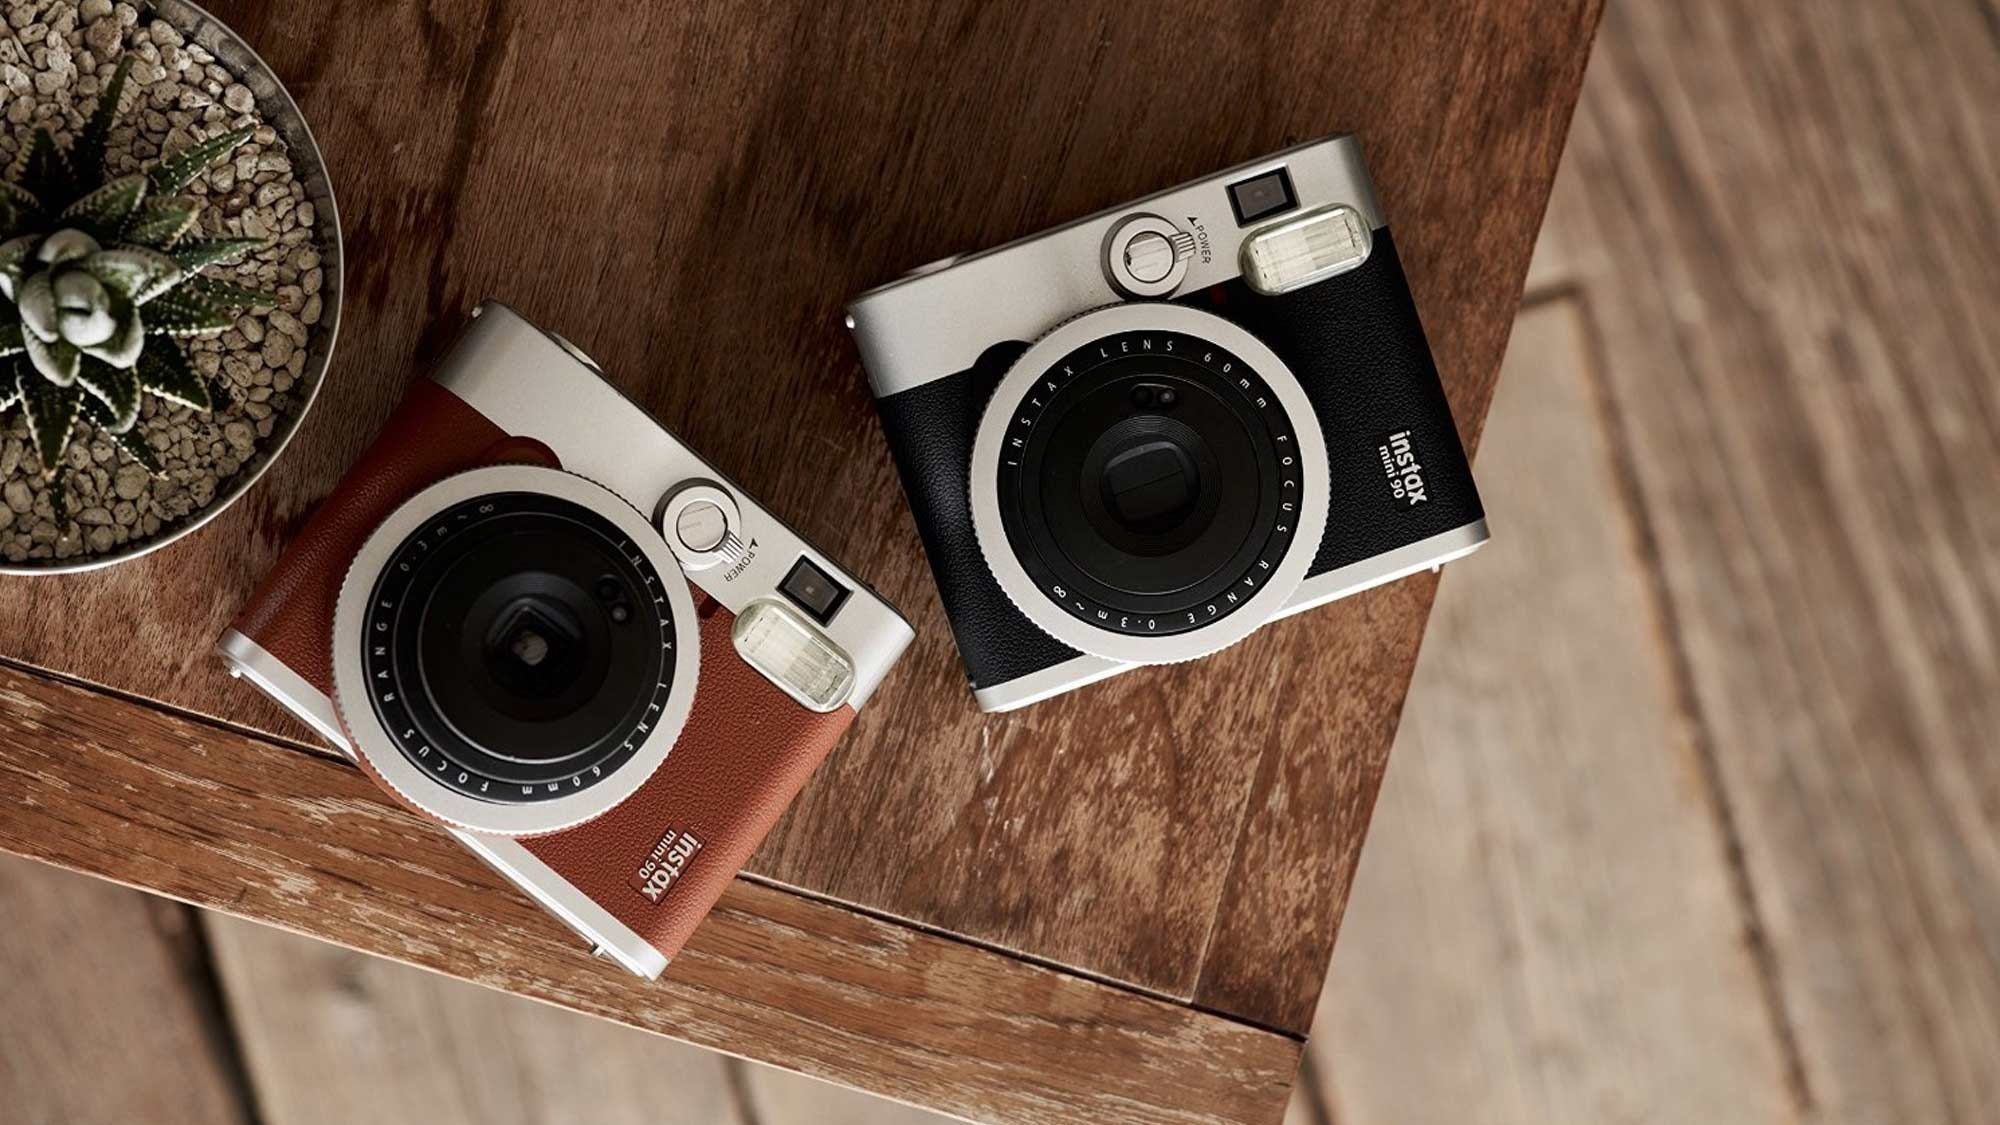 a6c250a3a76 Remember instant cameras and film  Owning a Polaroid camera was the coolest  thing possible back in the day before camera phones. Instant film is back  in a ...